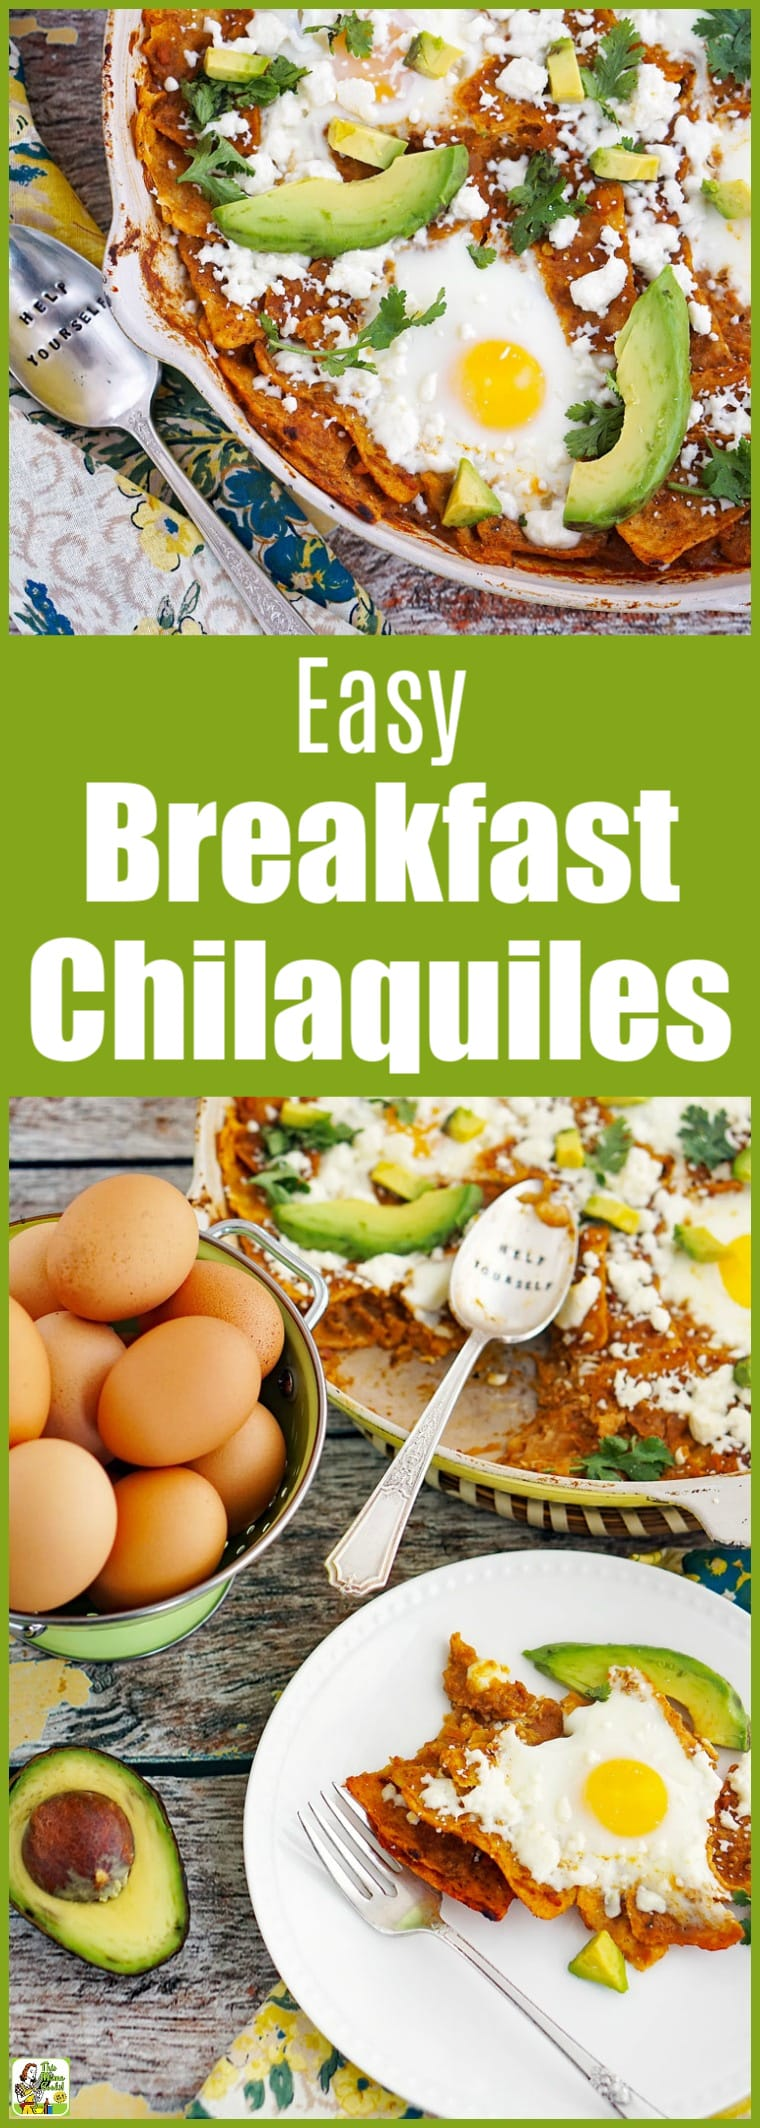 If you love Mexican food, you'll love this Breakfast Chilaquiles Recipe. Make it in an oven safe skillet for easy cleanup. Naturally gluten-free. #recipe #breakfast #mexicanfood #mexicanrecipes #avocado #skillet #eggs #glutenfree